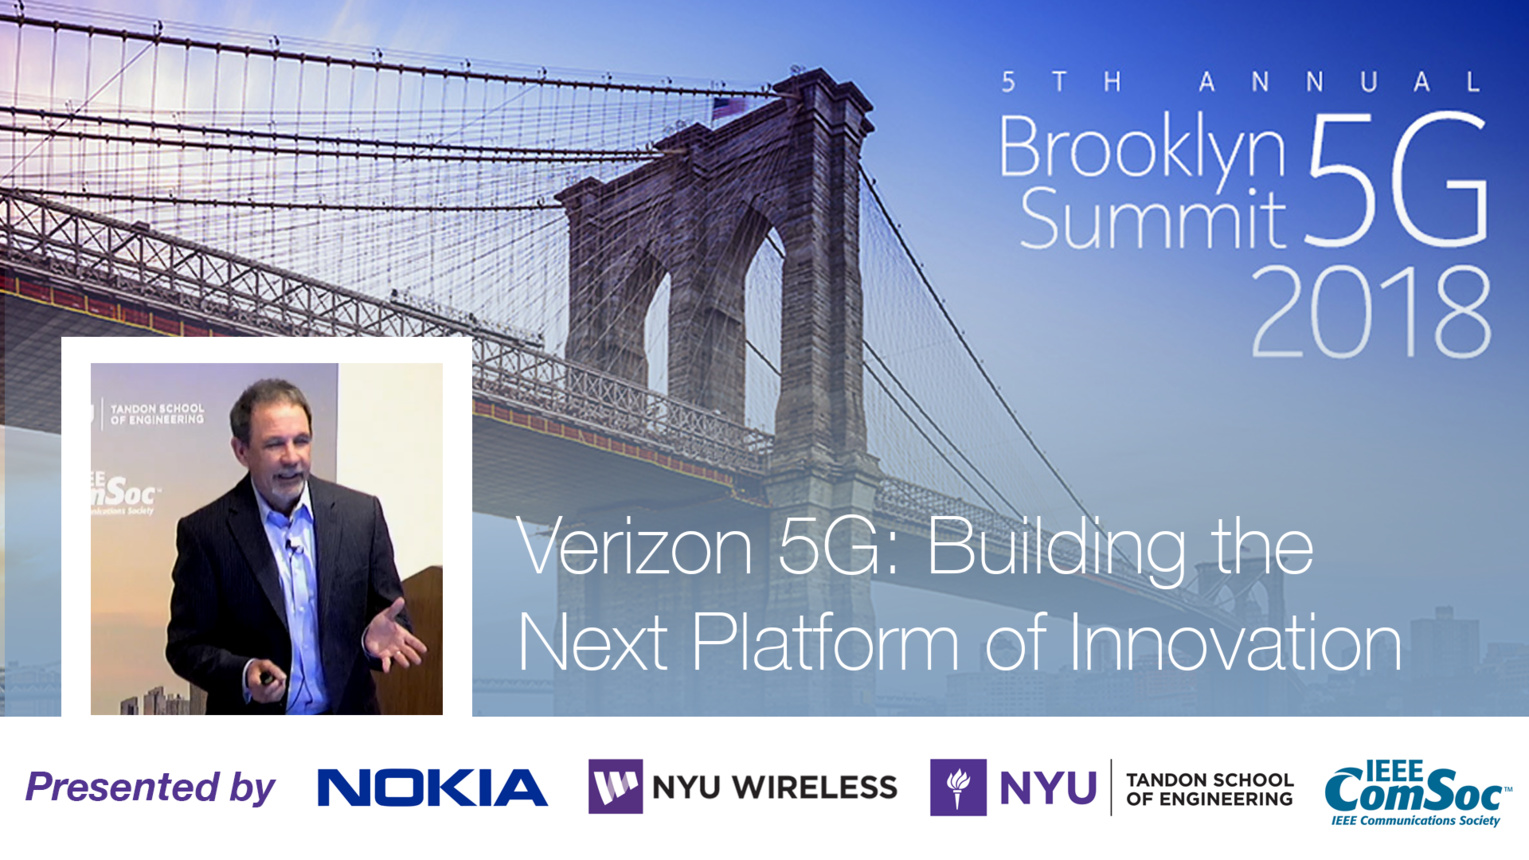 Verizon 5G: Building the Platform of Innovation - Bill Stone -  Brooklyn 5G Summit 2018